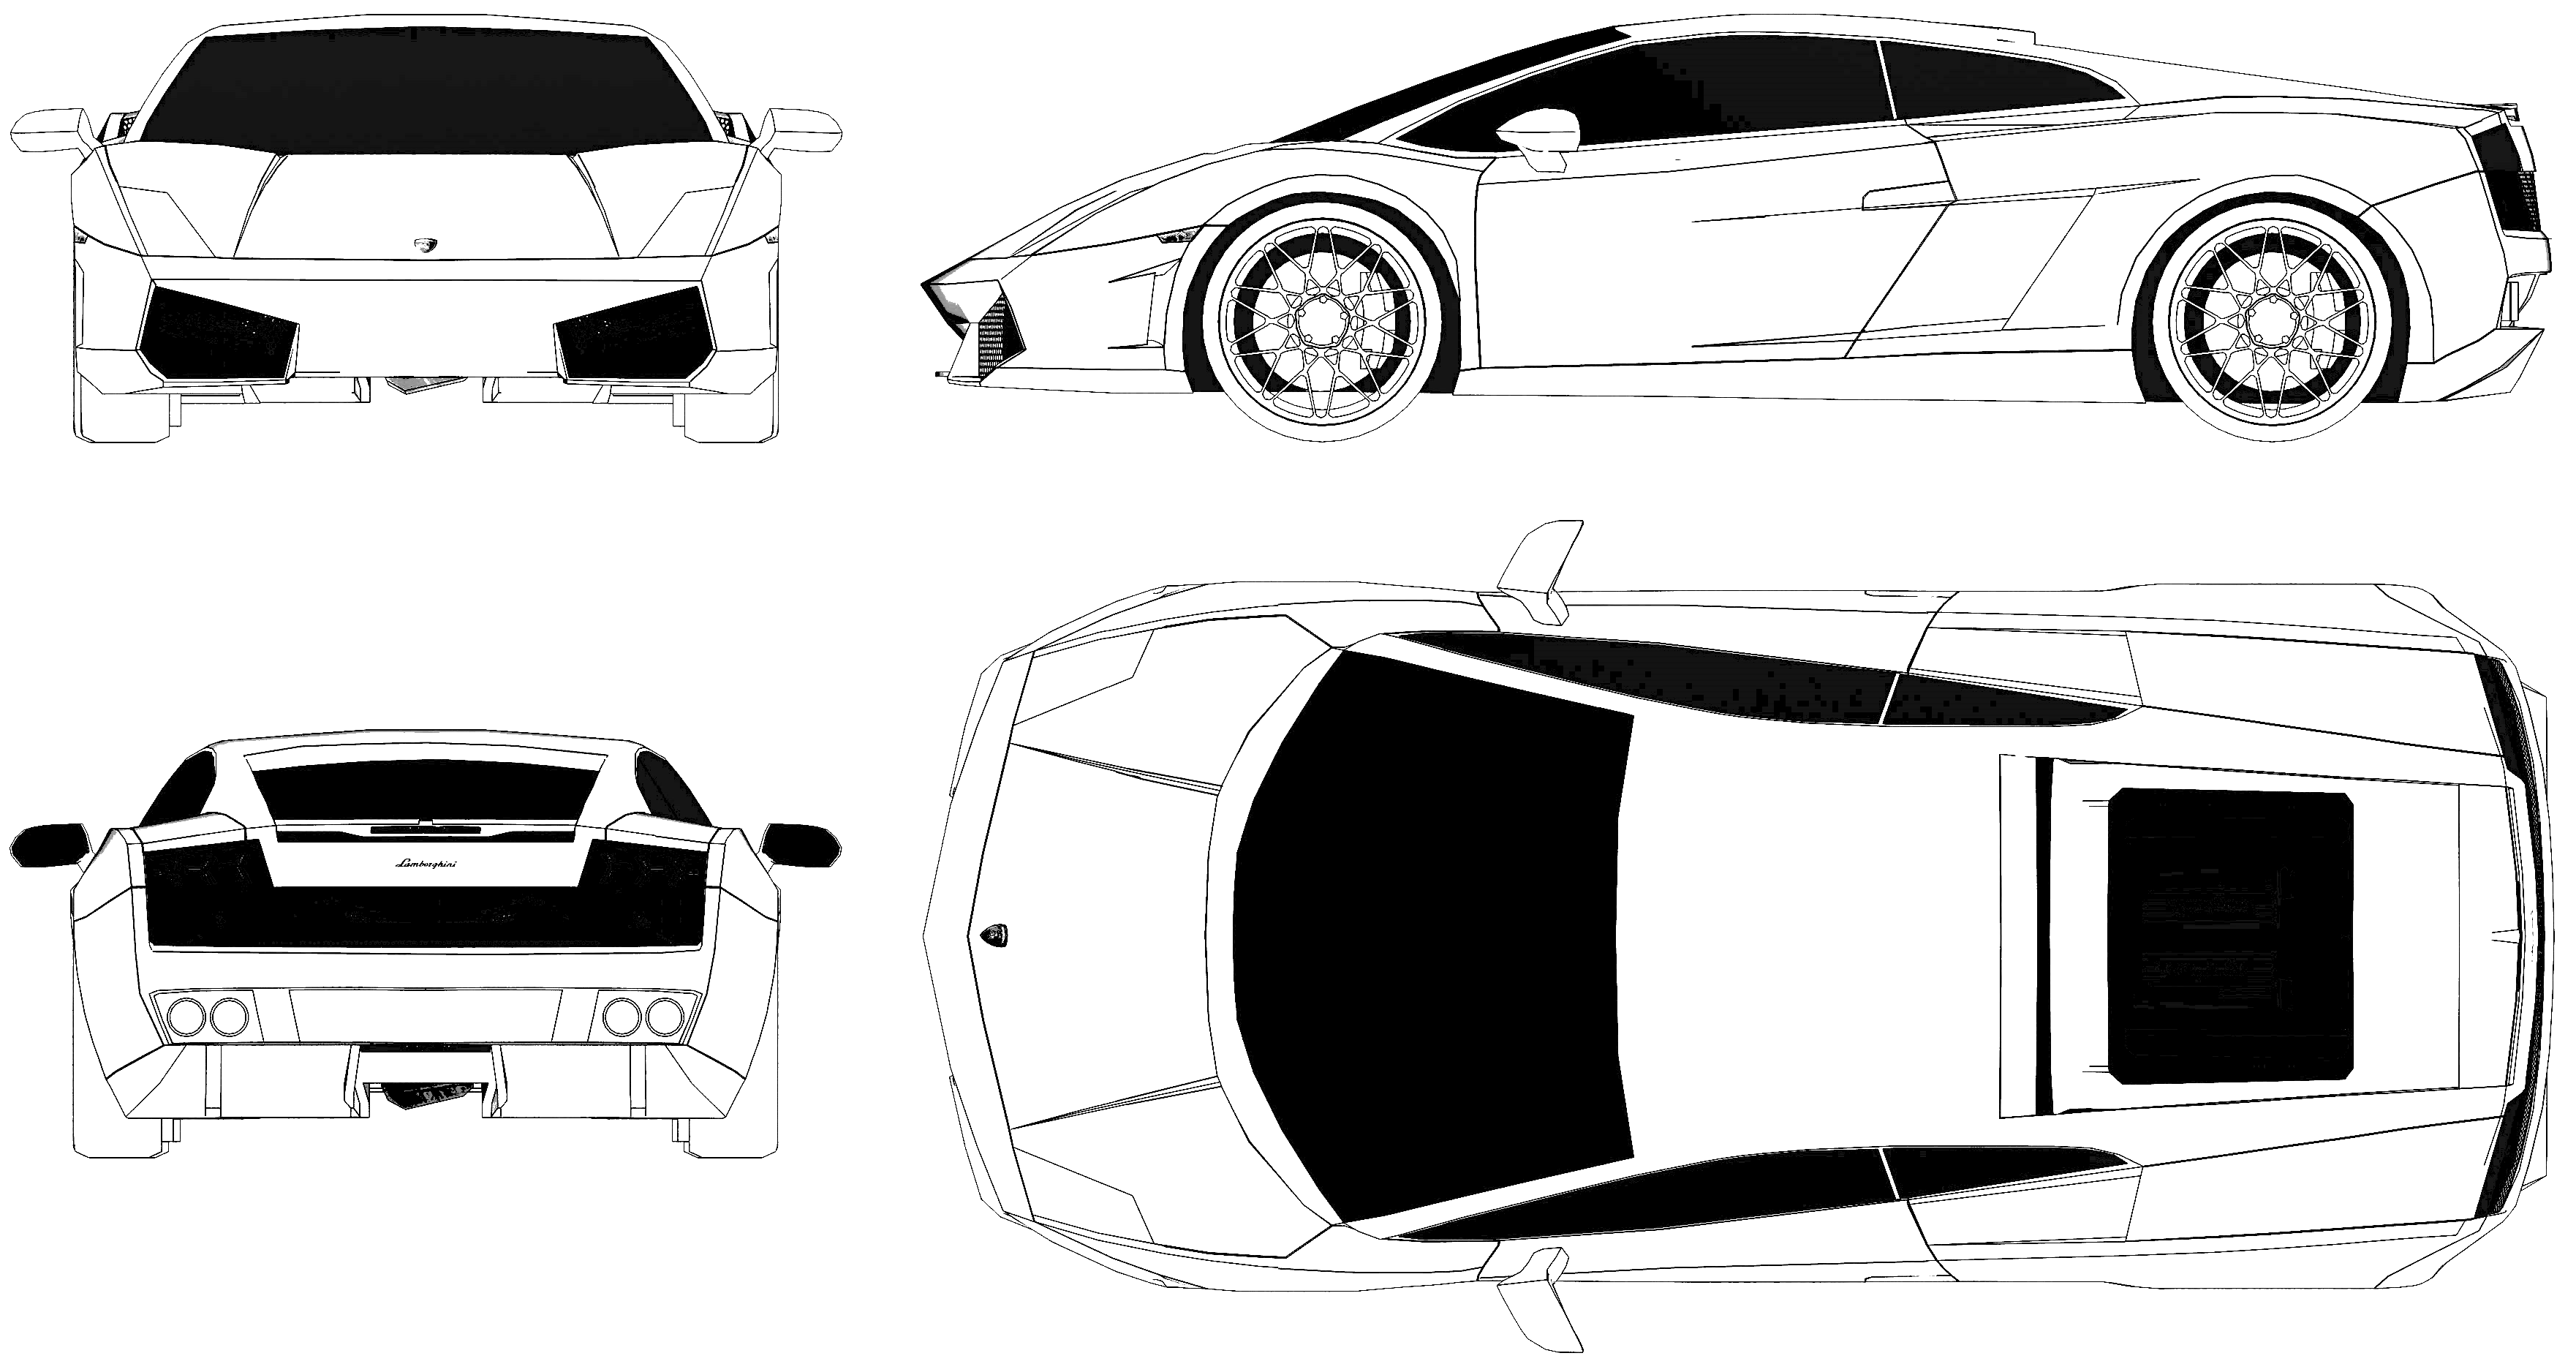 Lamborghini Gallardo blueprint